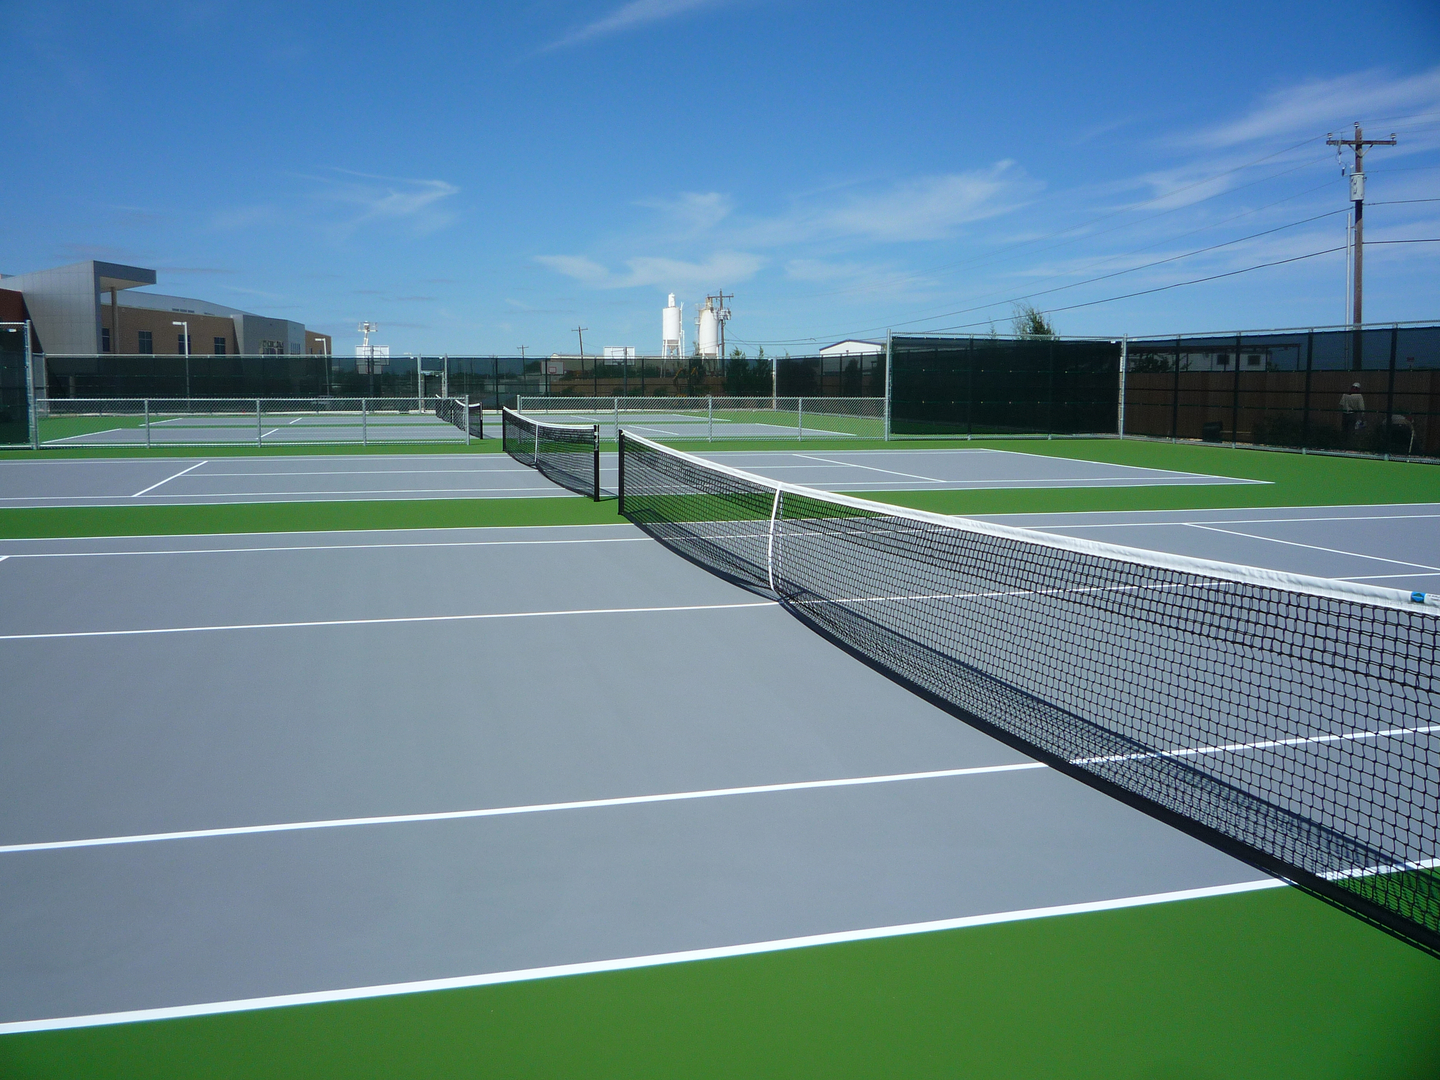 Tennis court construction - The Tennis Court Company - Dallas, Texas